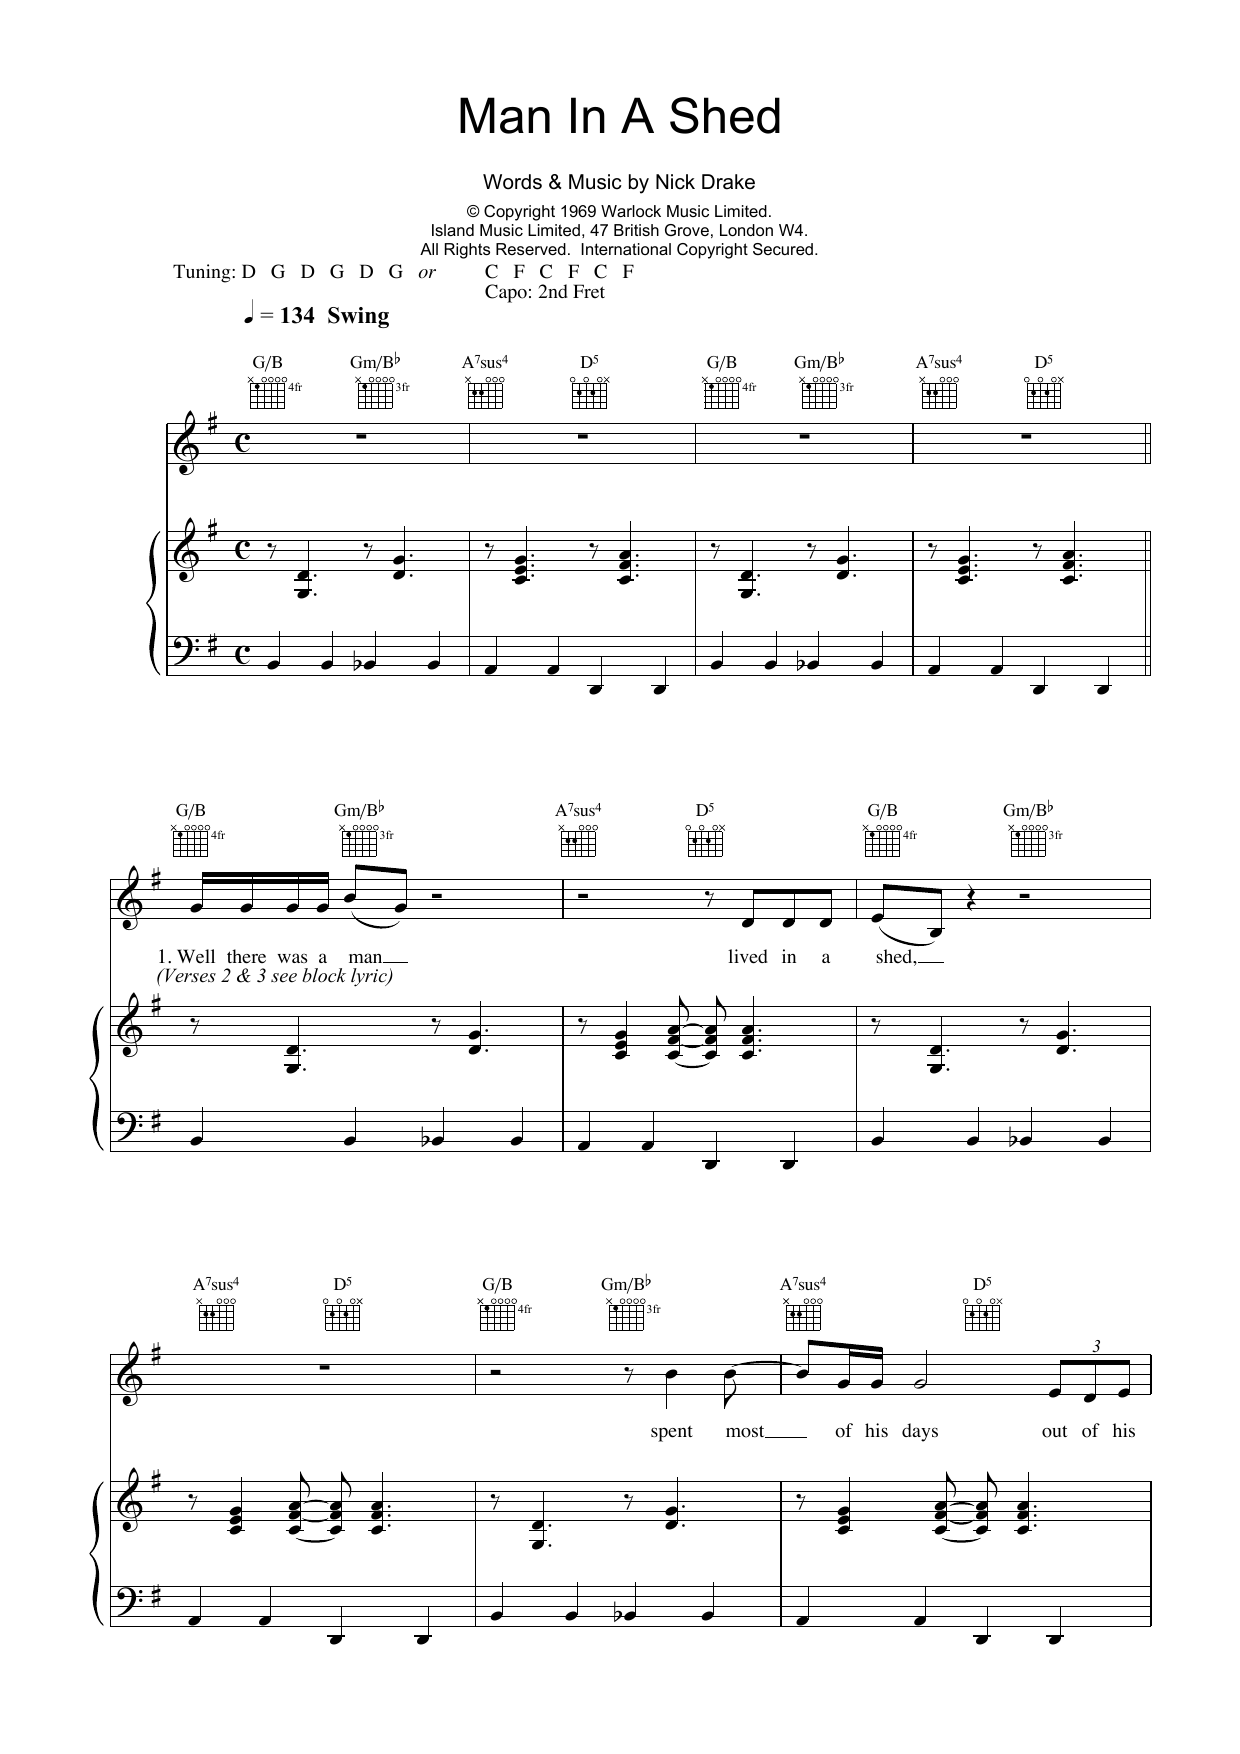 Man In A Shed Sheet Music